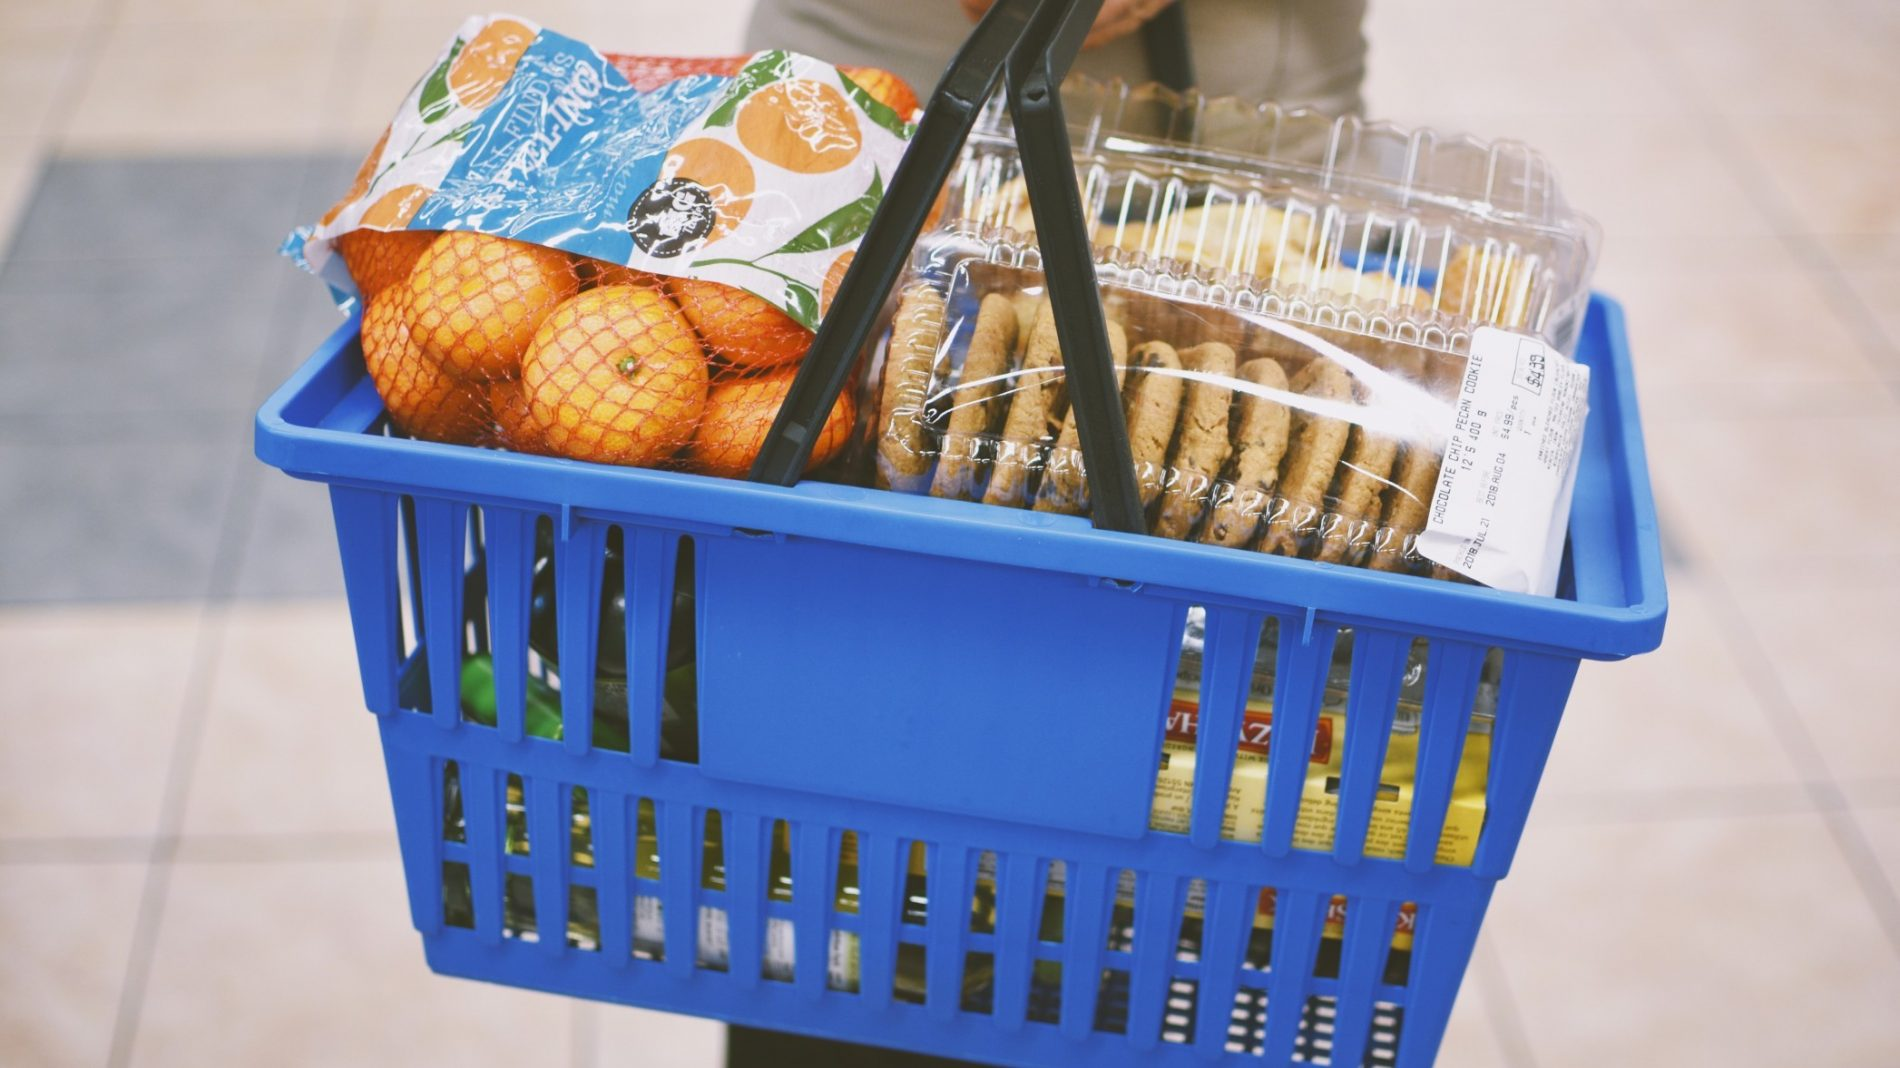 grocery-shopping-with-a-basket-full-of-goodies_t20_EnNleK